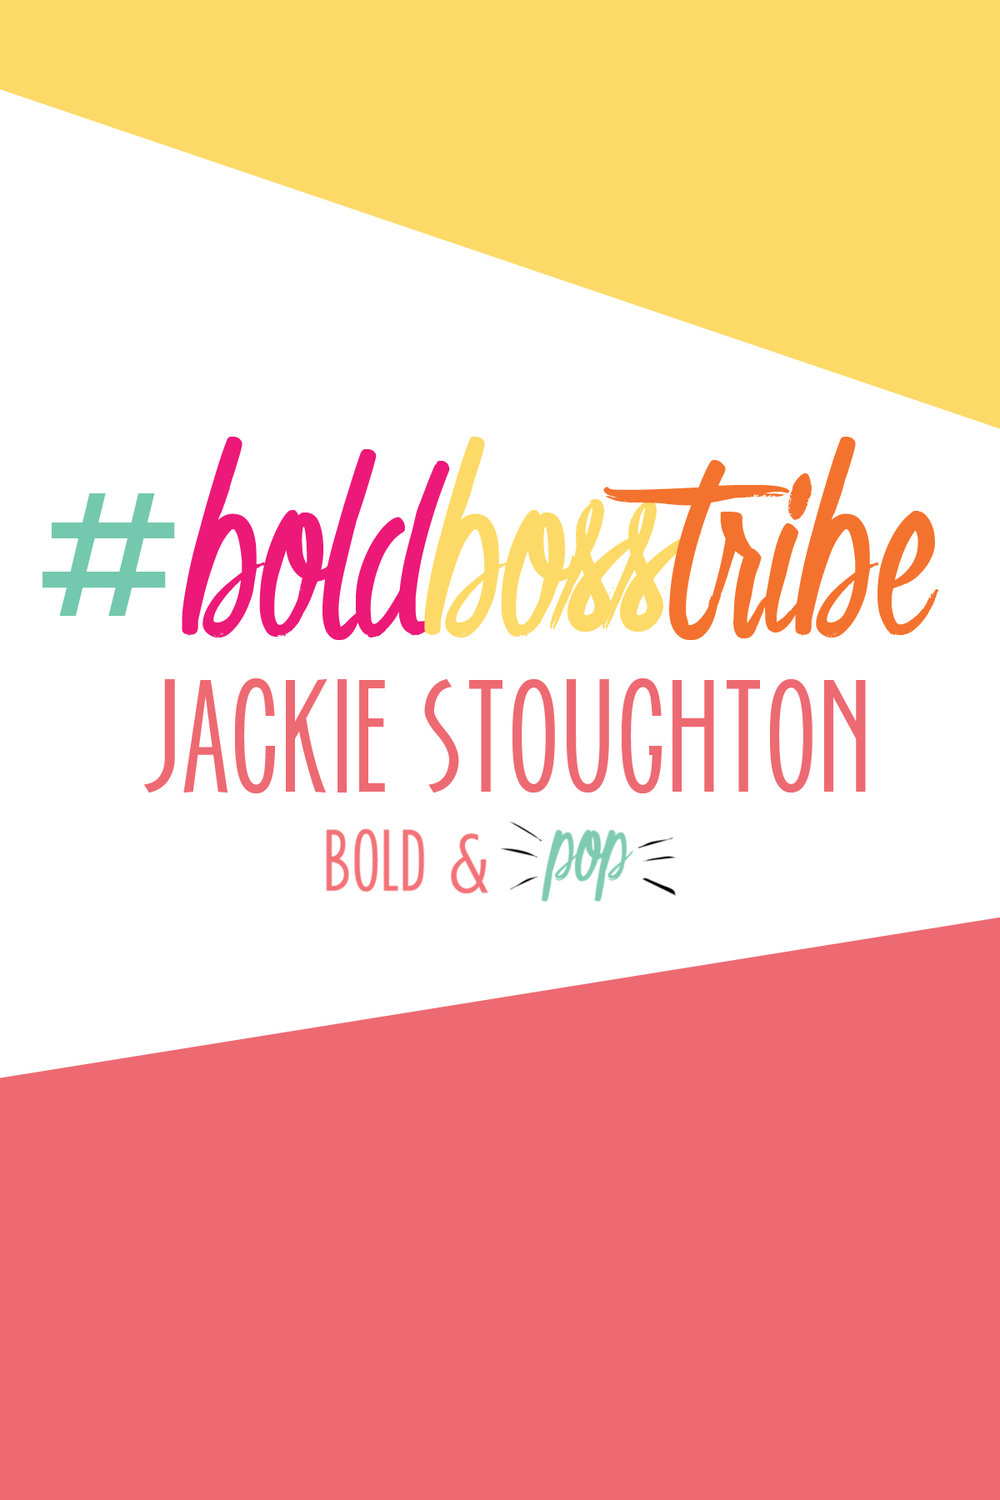 Bold & Pop :: #BoldBossTribe Feature with Jackie Stoughton Founder of Jade and Oak